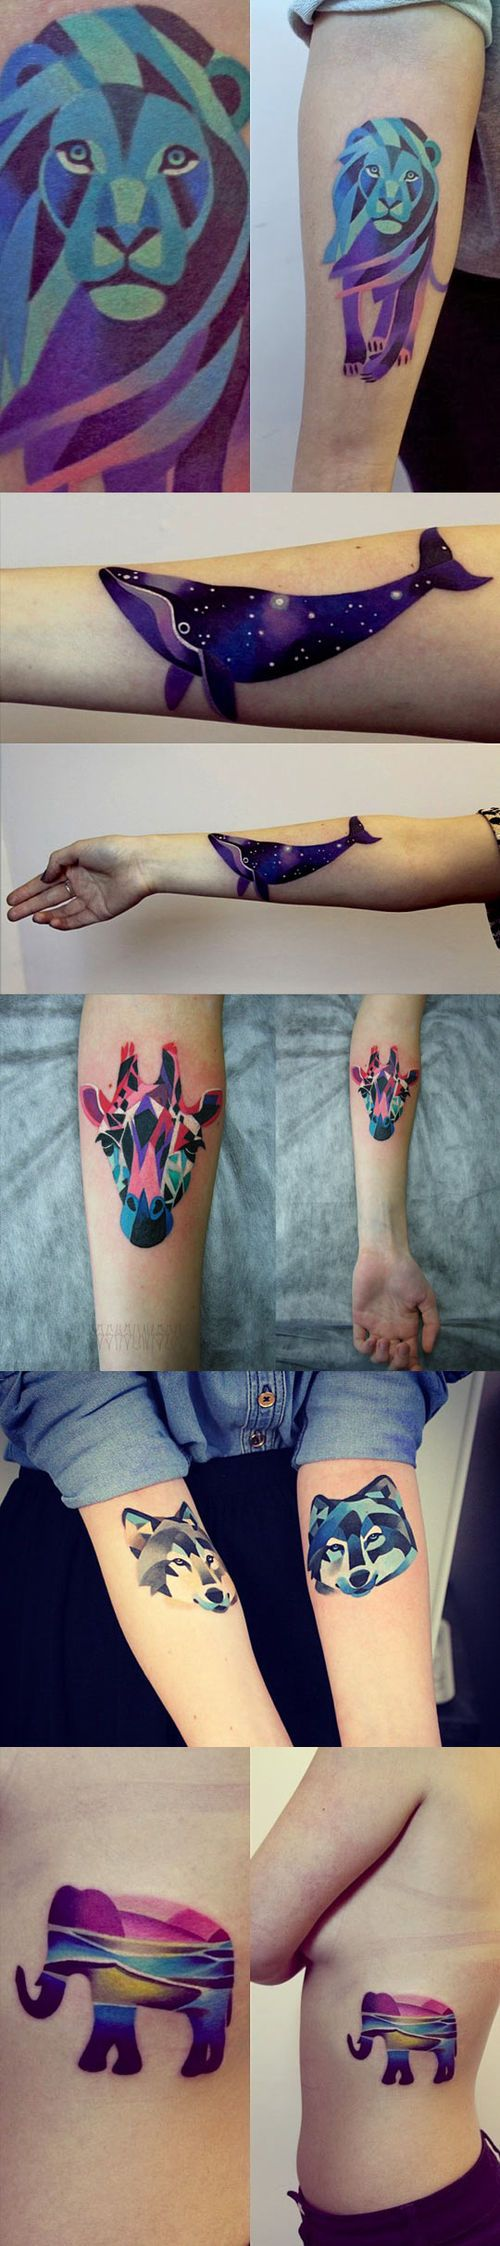 Sasha Unisex's tattoos are phenomenal! I would so get a tattoo by her if she was in the states!